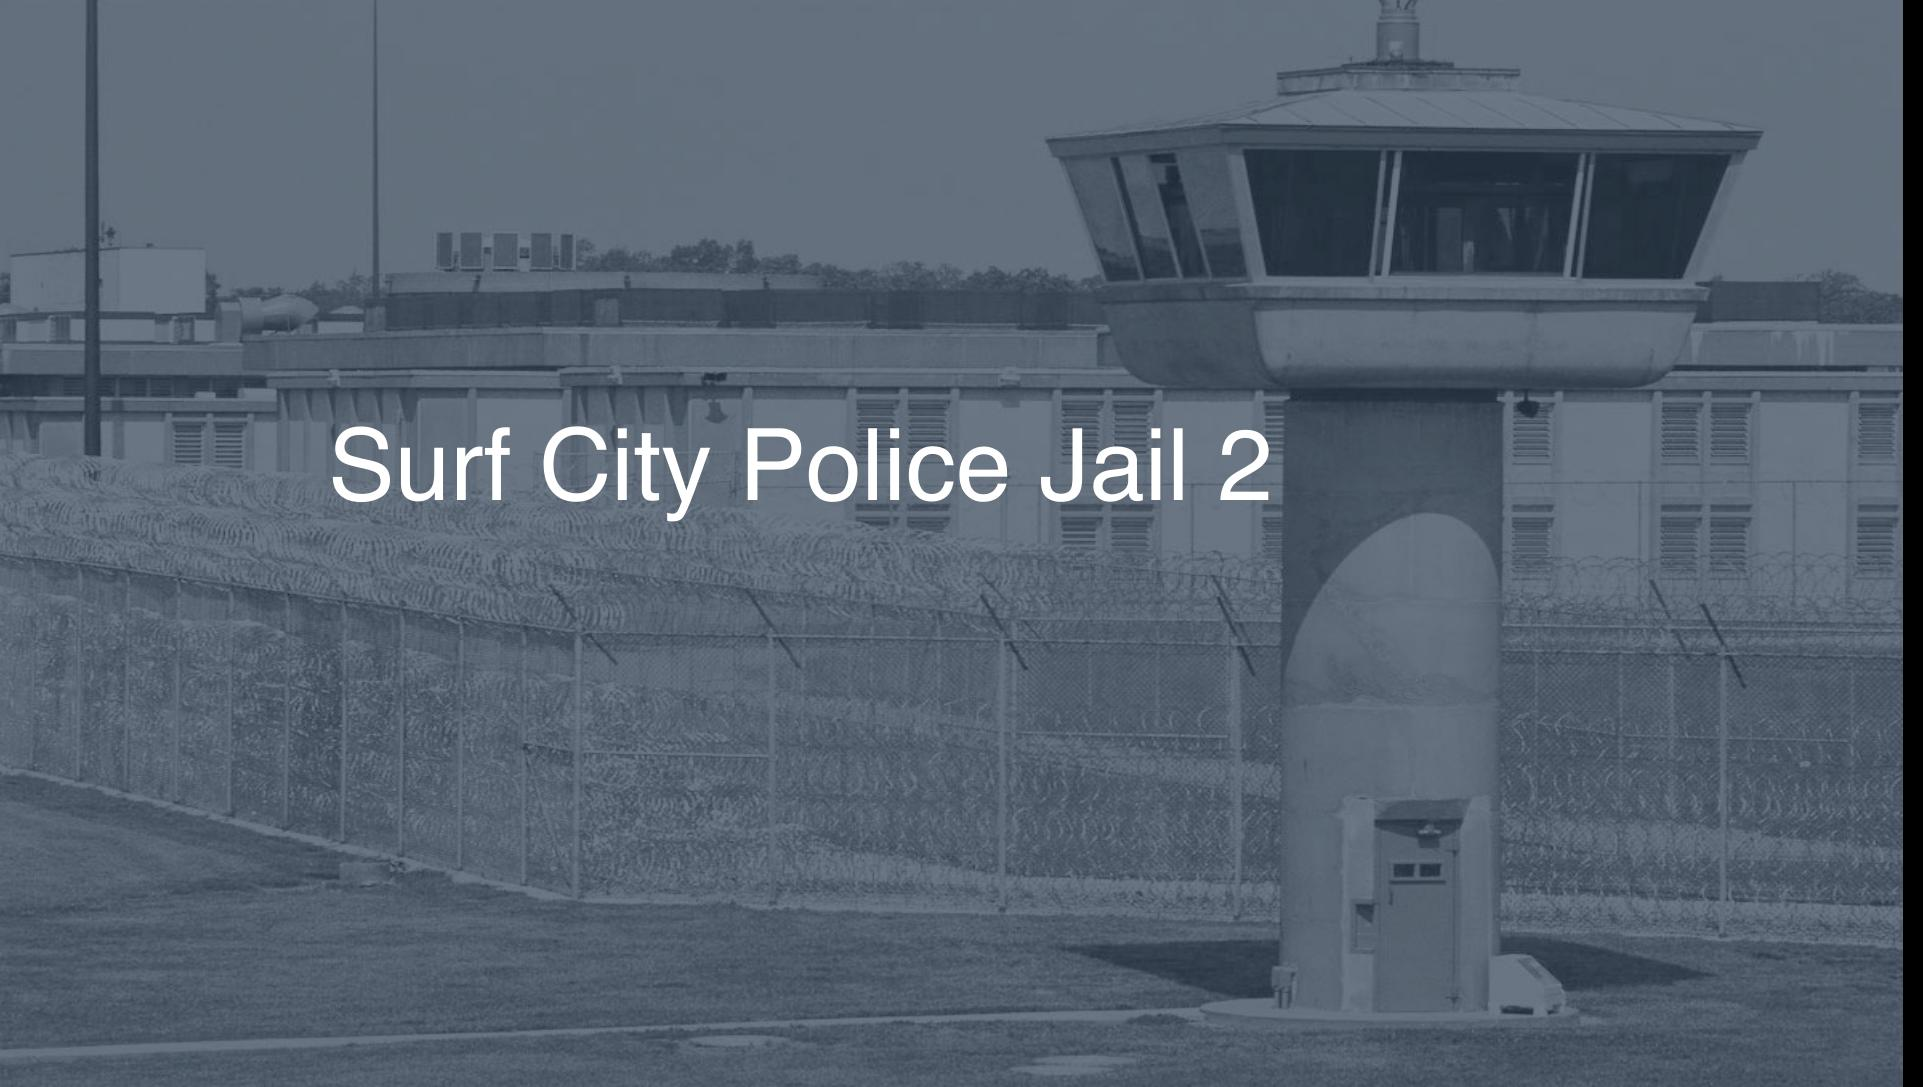 Surf City Police Jail correctional facility picture